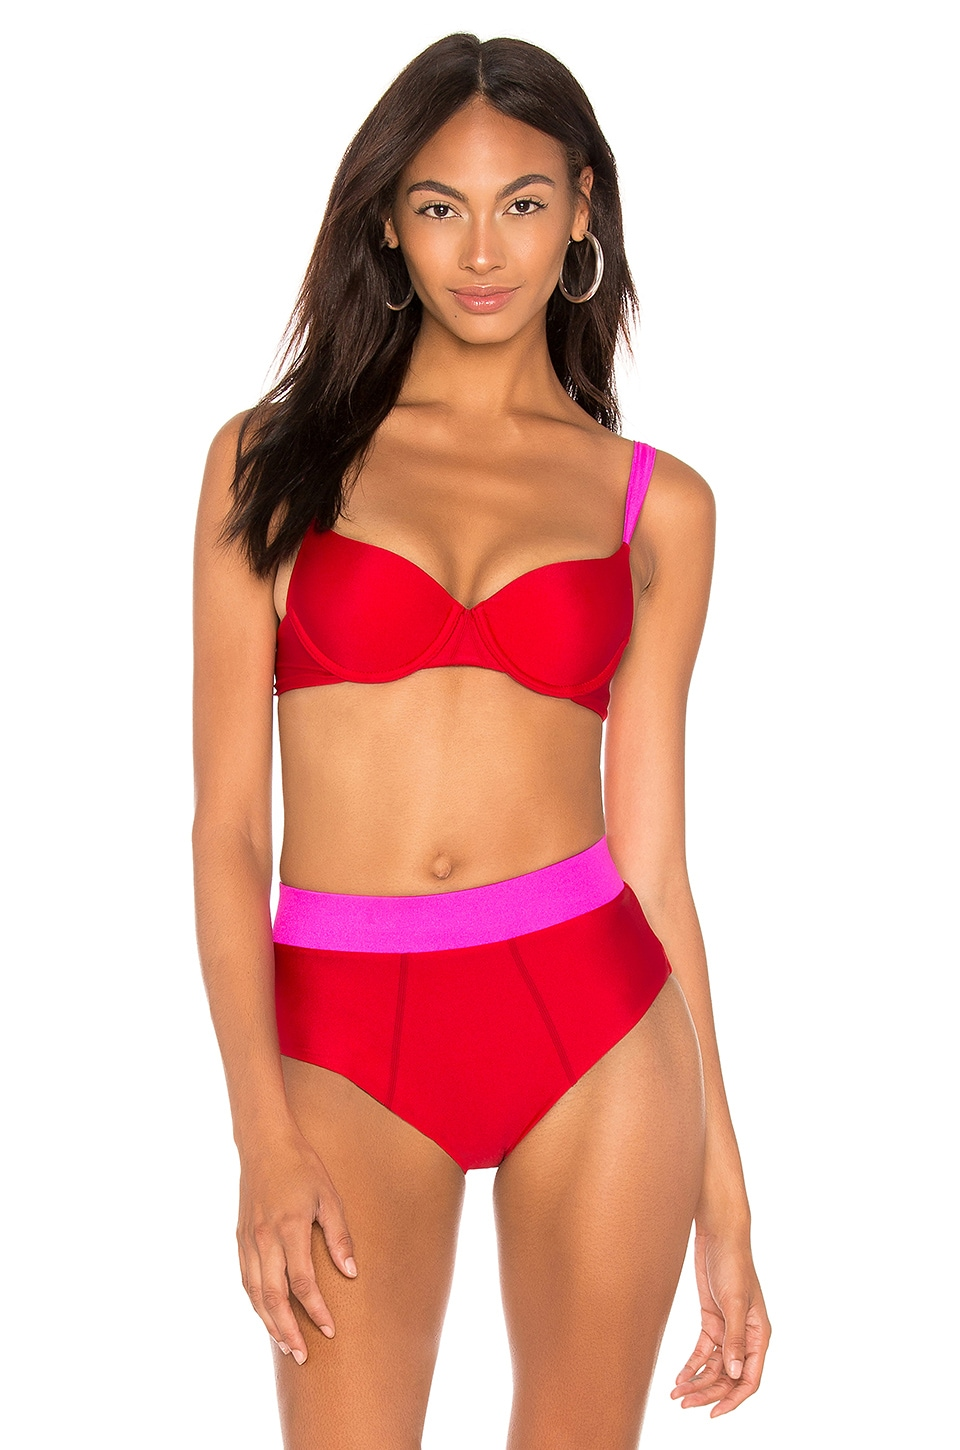 LOVEWAVE The Naomi in Red